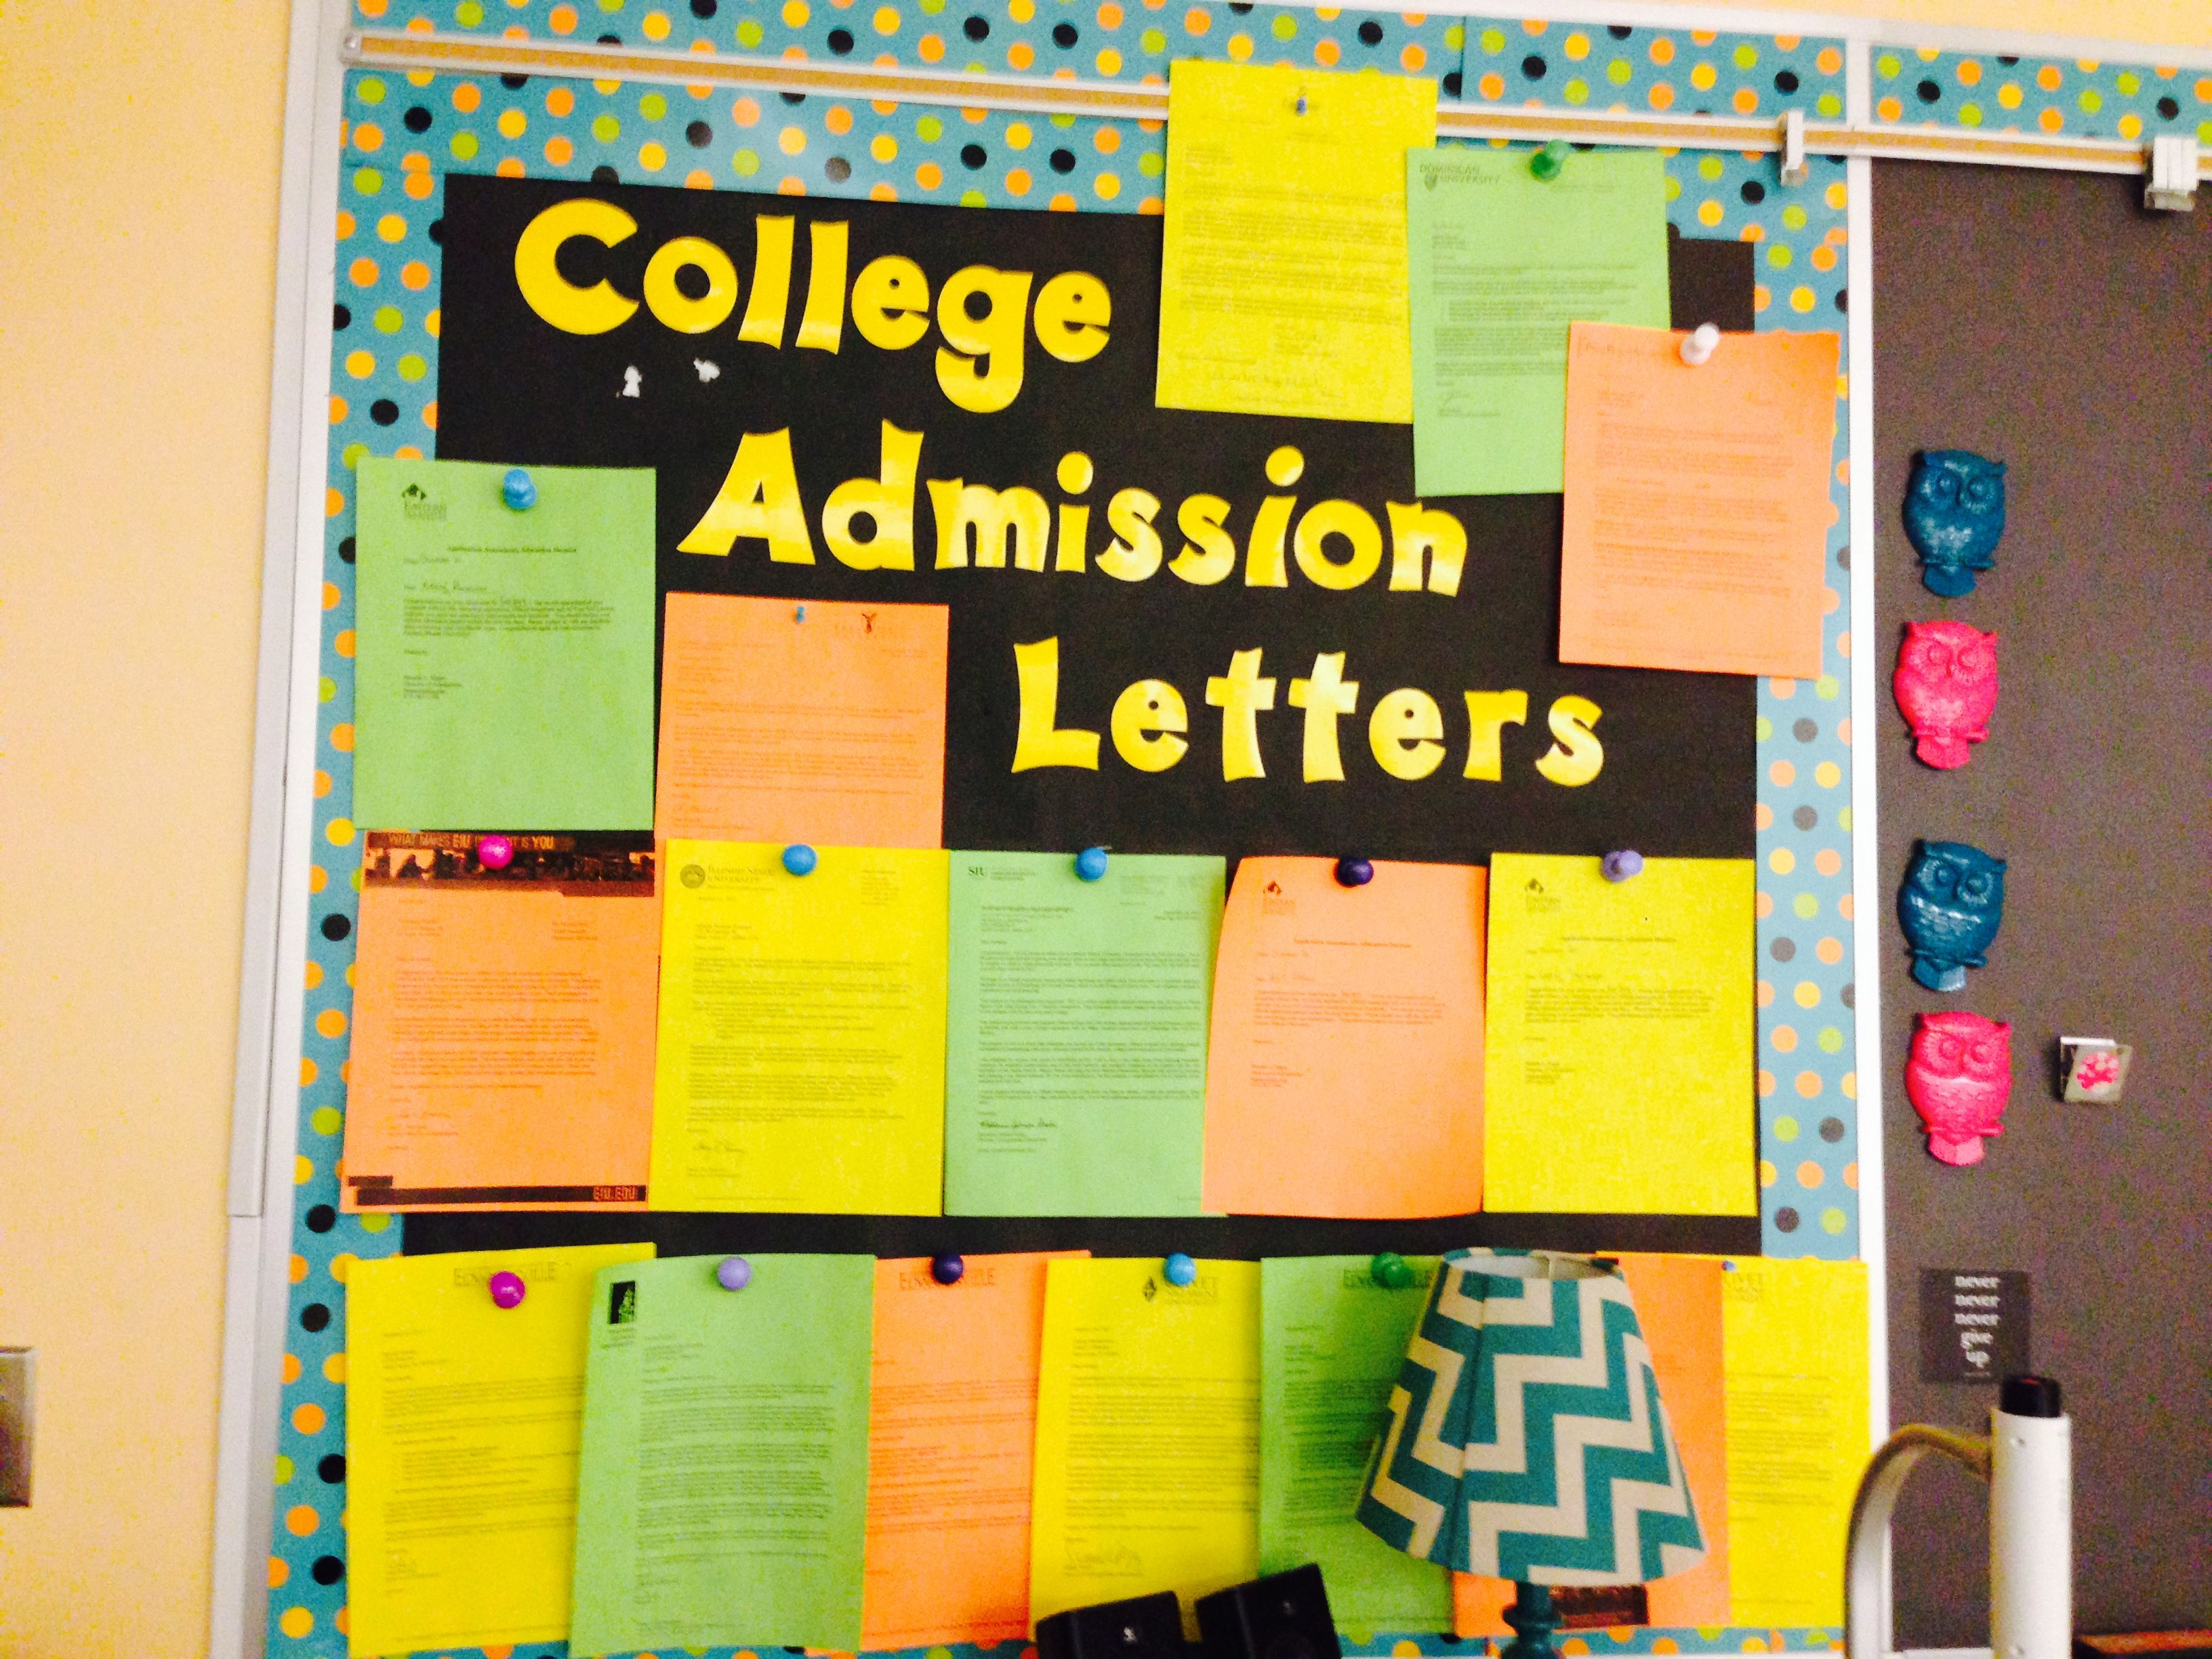 College Admission Letter Bulletin Board Create A CollegeGoing